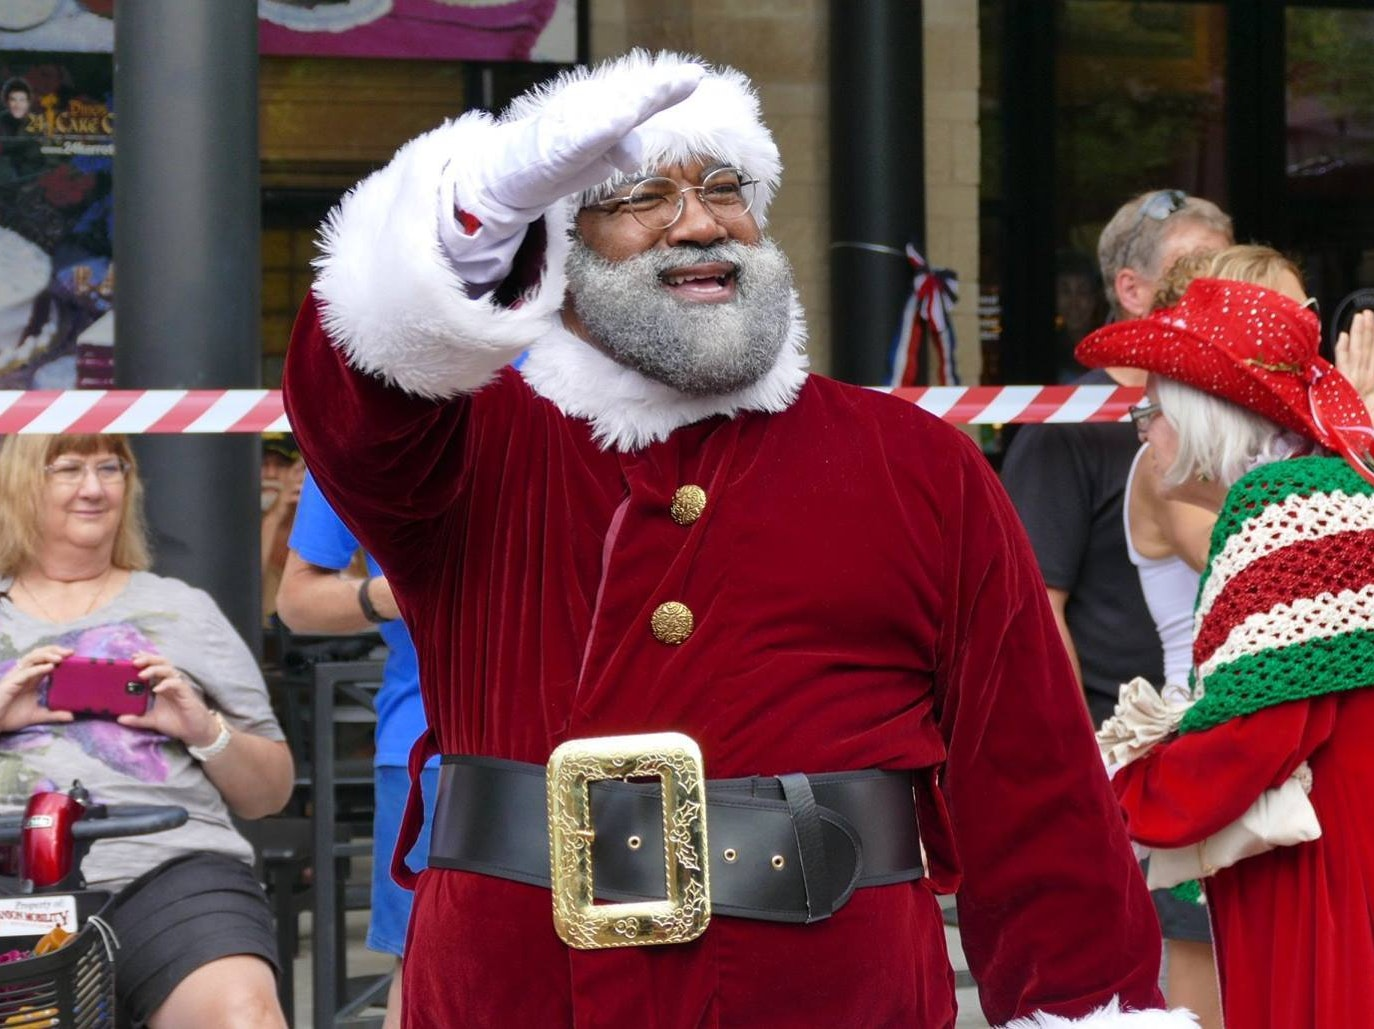 Minnesota's Black Santa Is Pissing Off a Lot of Racists